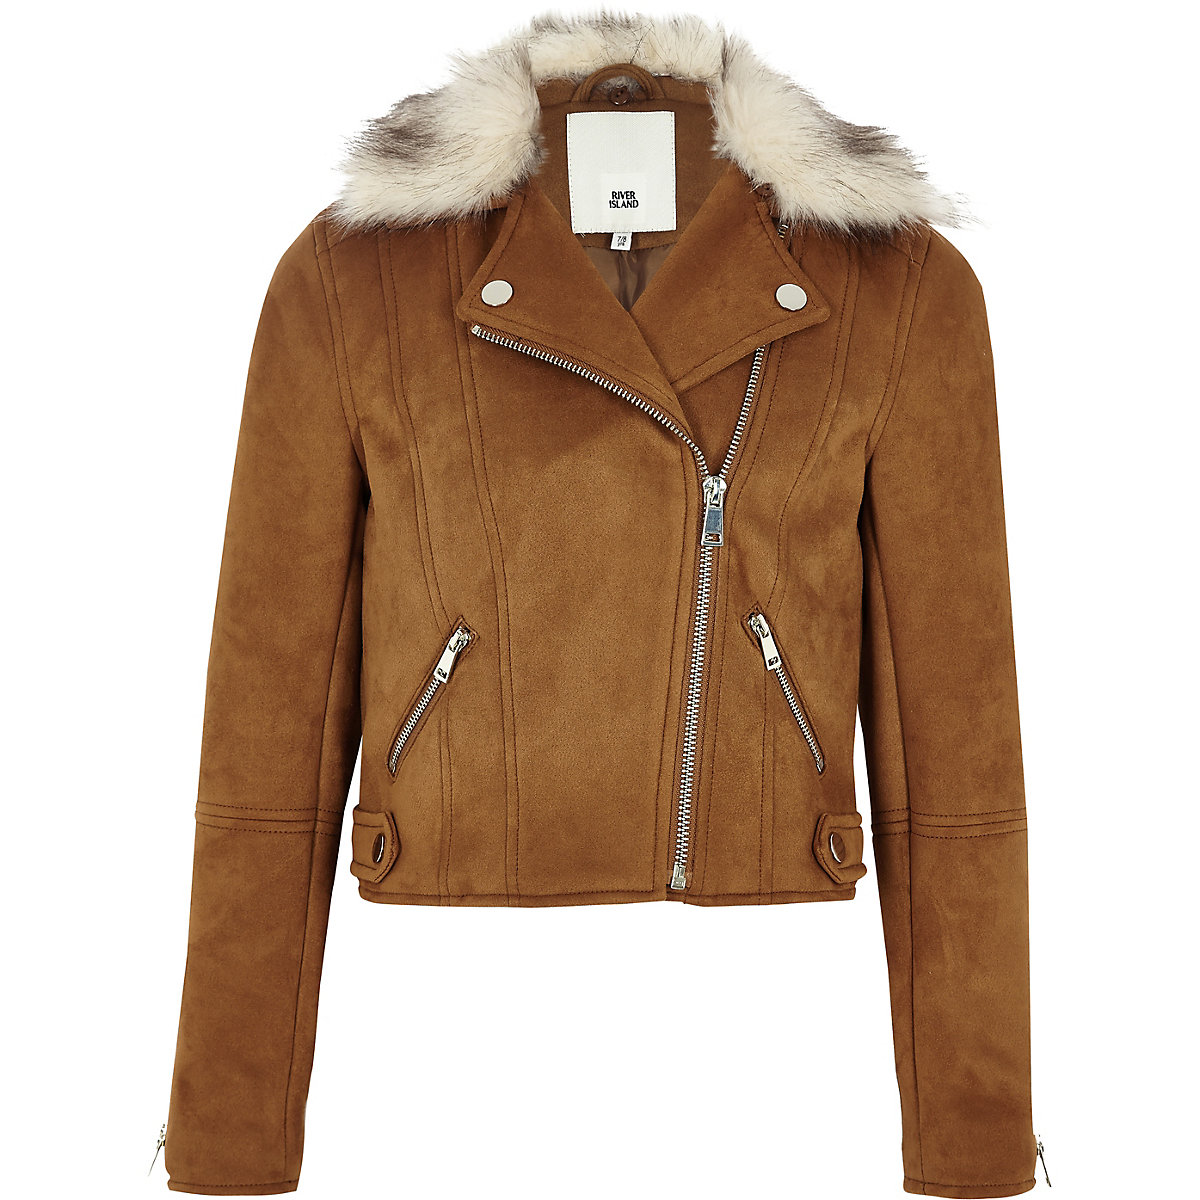 Girls brown faux suede fur biker jacket